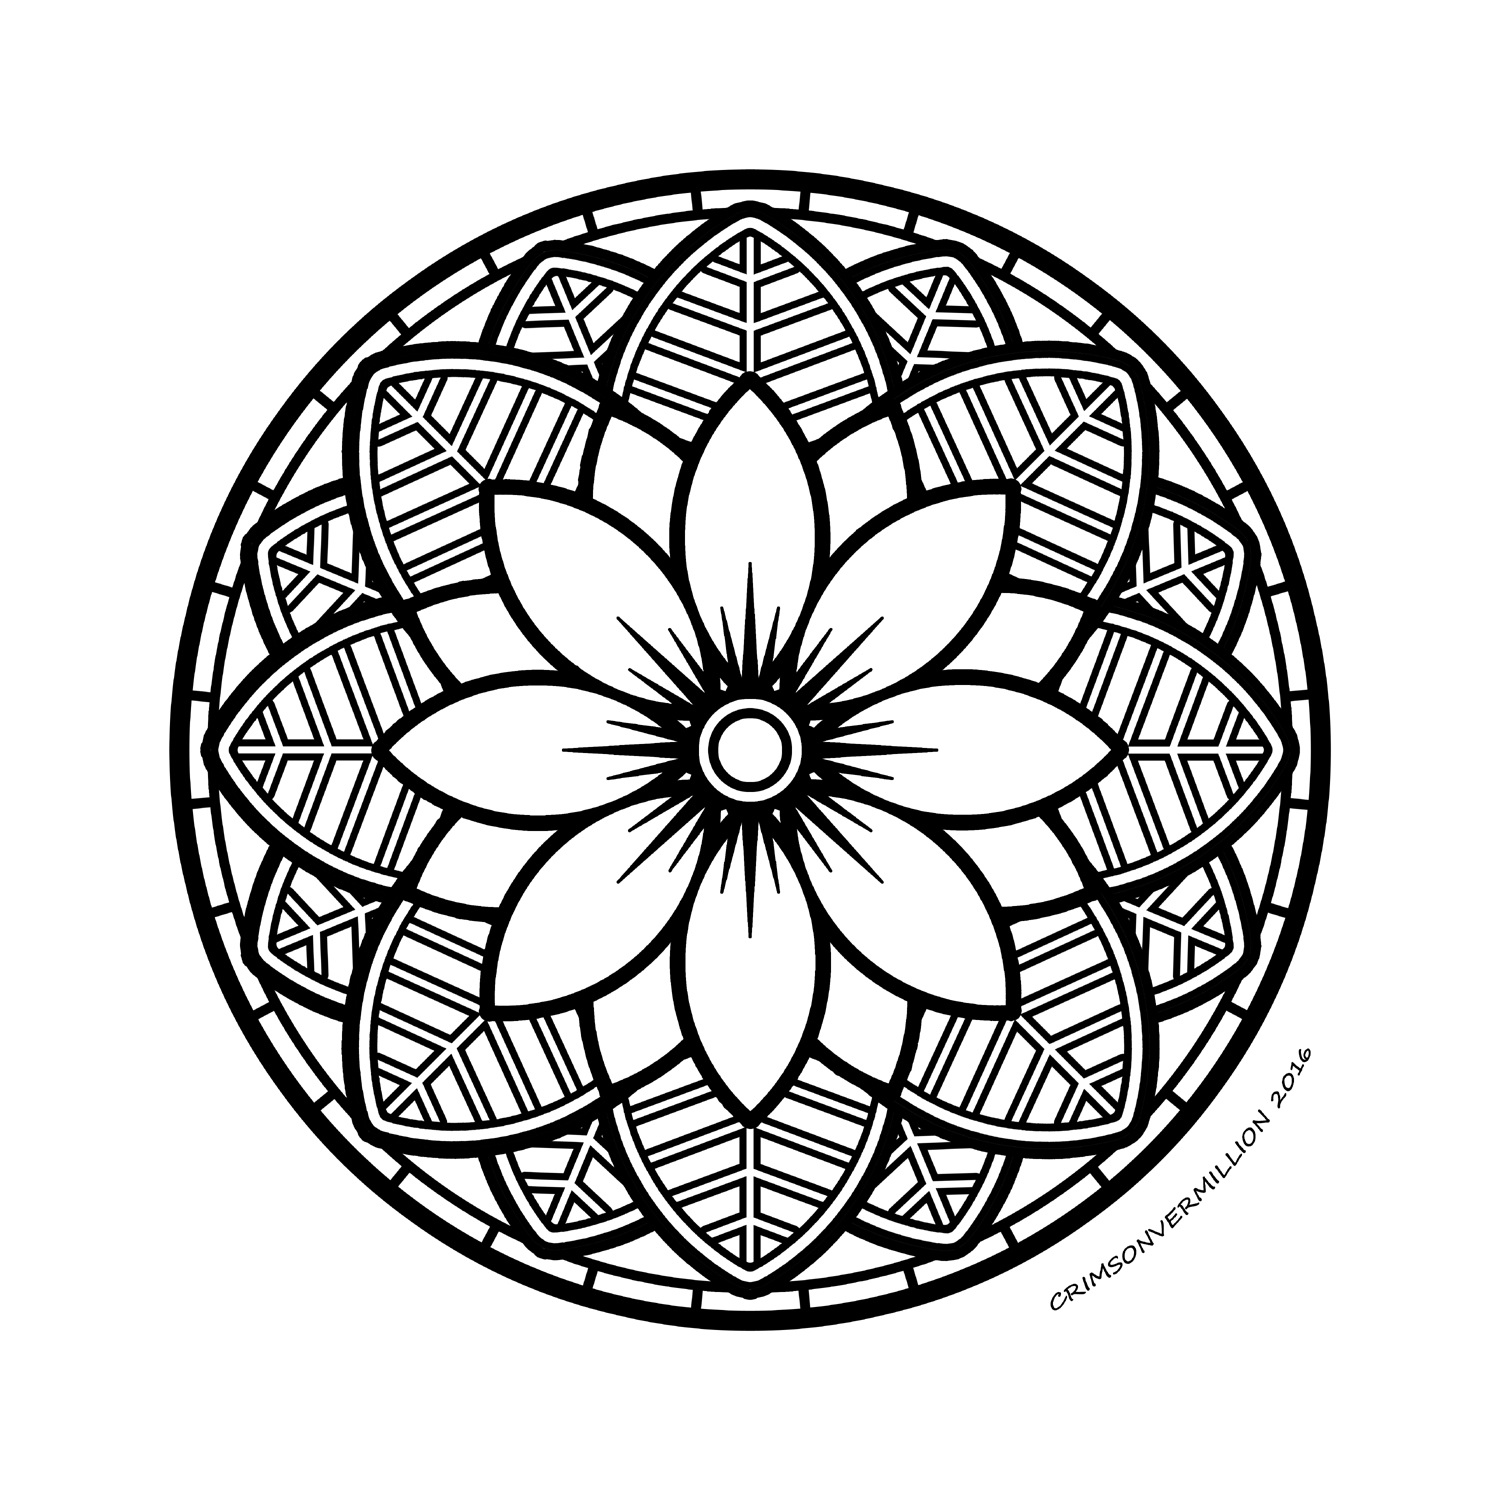 Color this mandala to time travel with it!